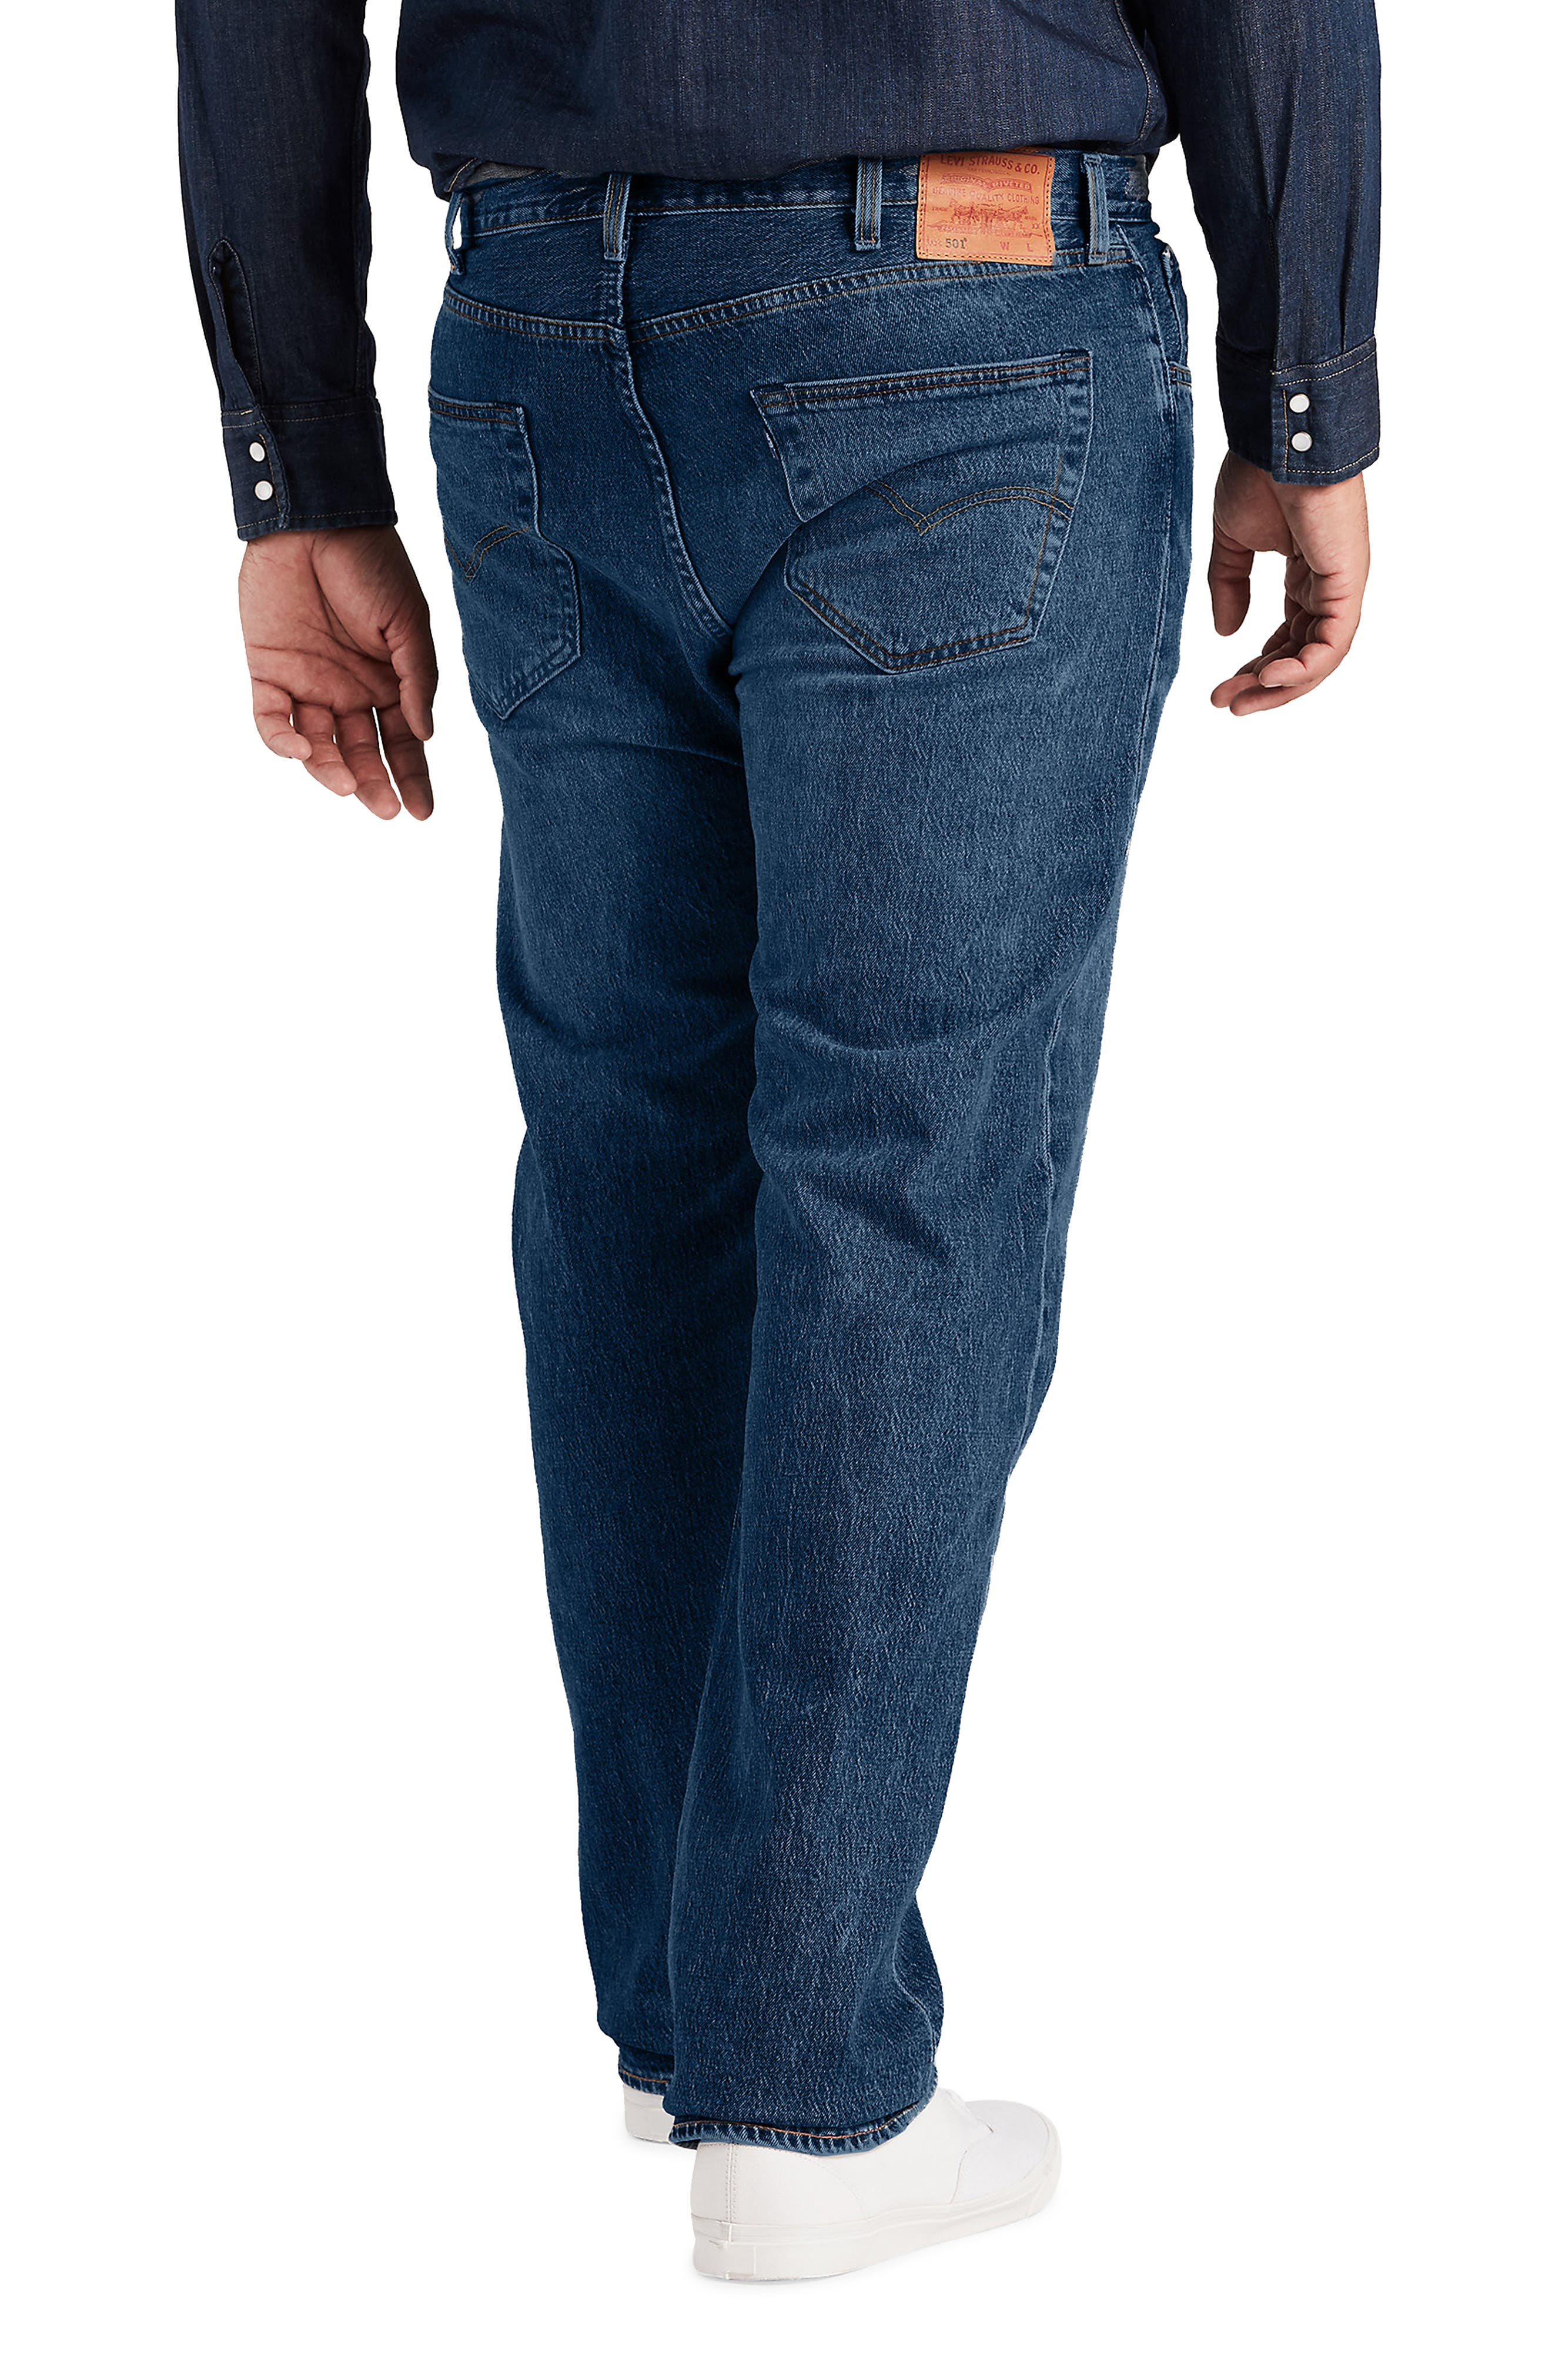 LEVI'S<SUP>®</SUP>,                             501<sup>®</sup> Straight Leg Jeans,                             Alternate thumbnail 2, color,                             DAIRY WHIPPED